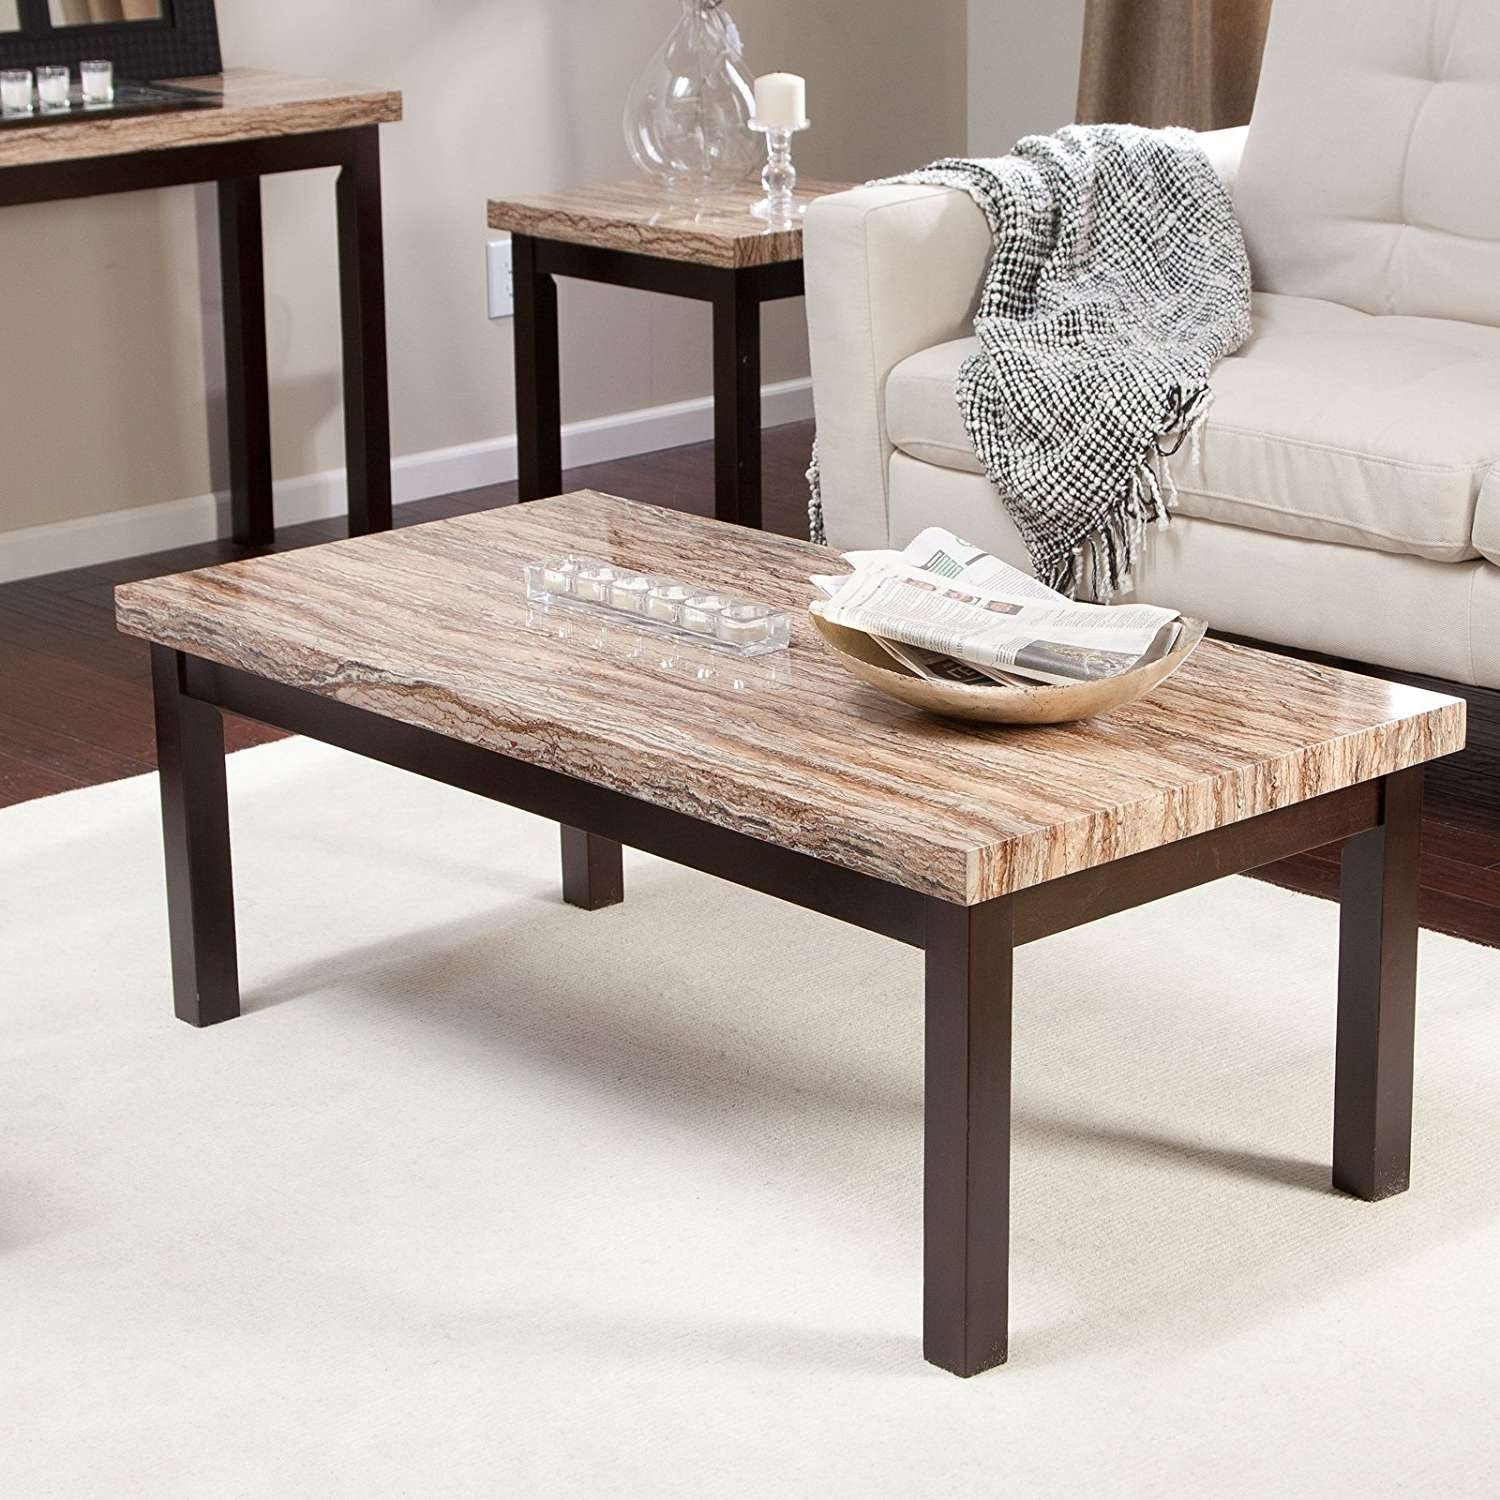 Famous Cheap Coffee Tables With Regard To Cheap Coffee Tables Under $100 That Work For Every Style (View 12 of 20)